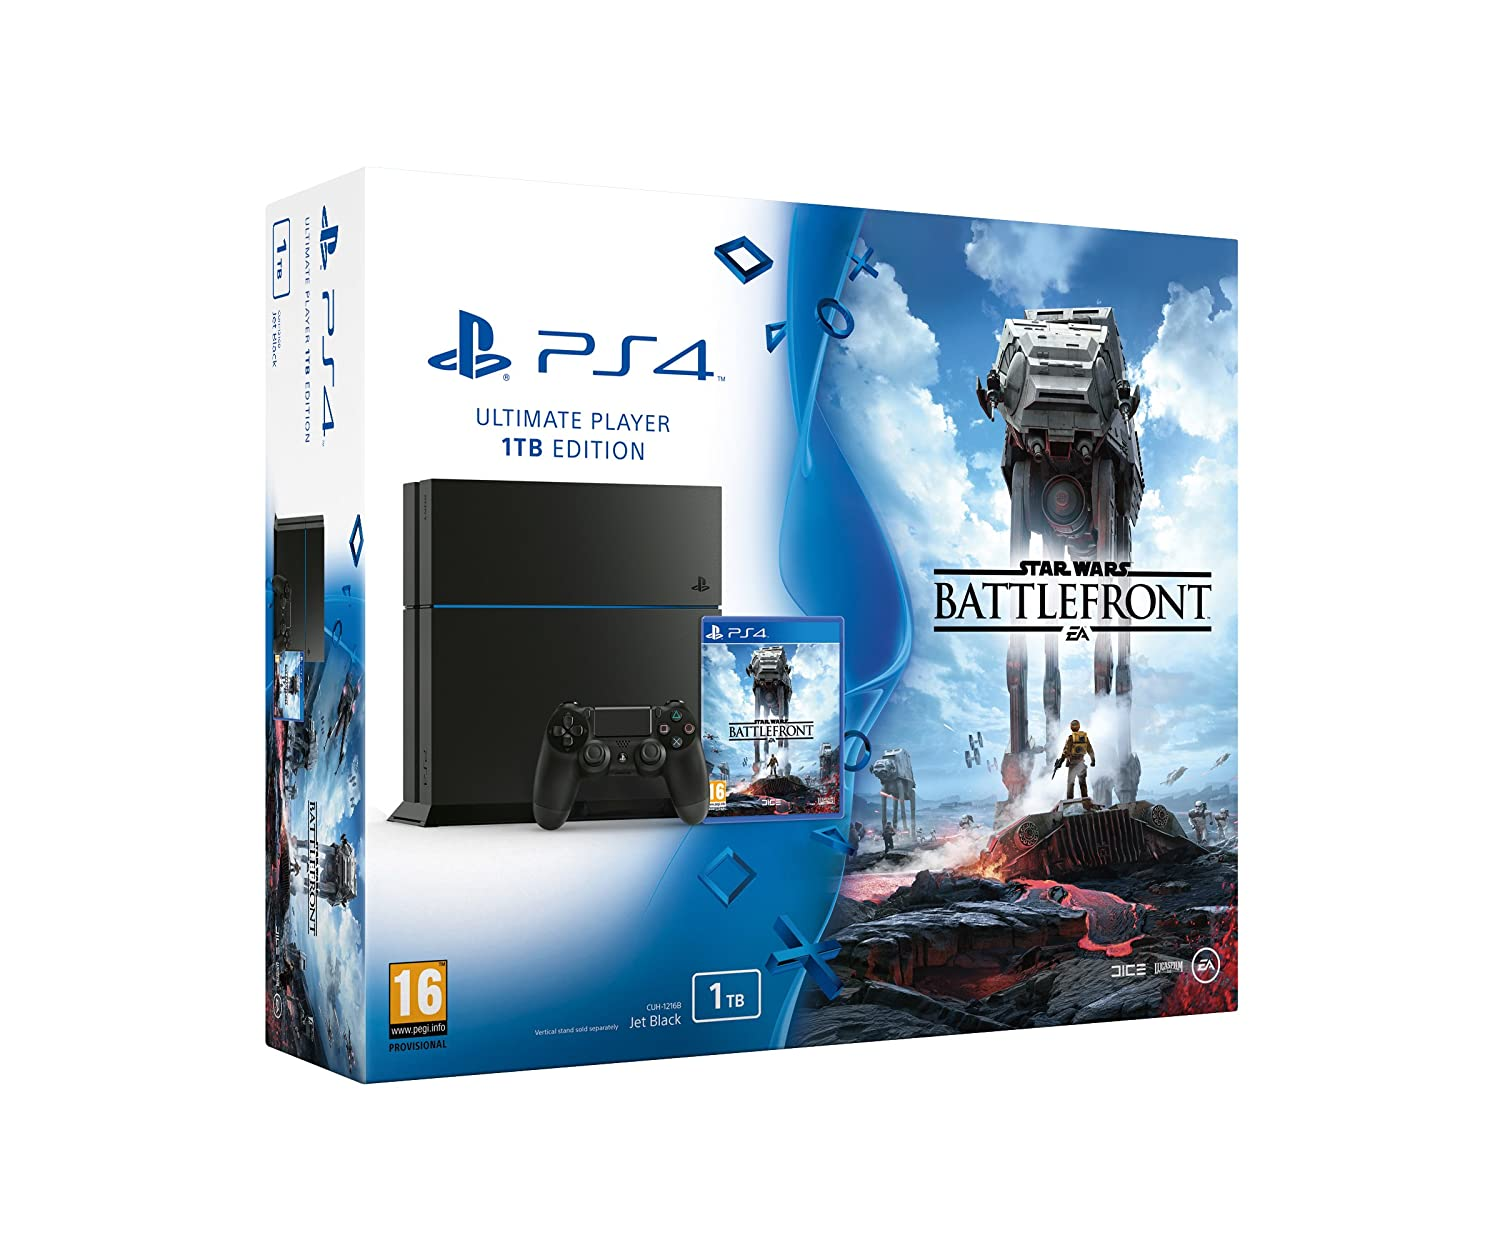 Sony Playstation 4 1Tb With Star Wars Battlefront [Importación Inglesa]: Amazon.es: Videojuegos